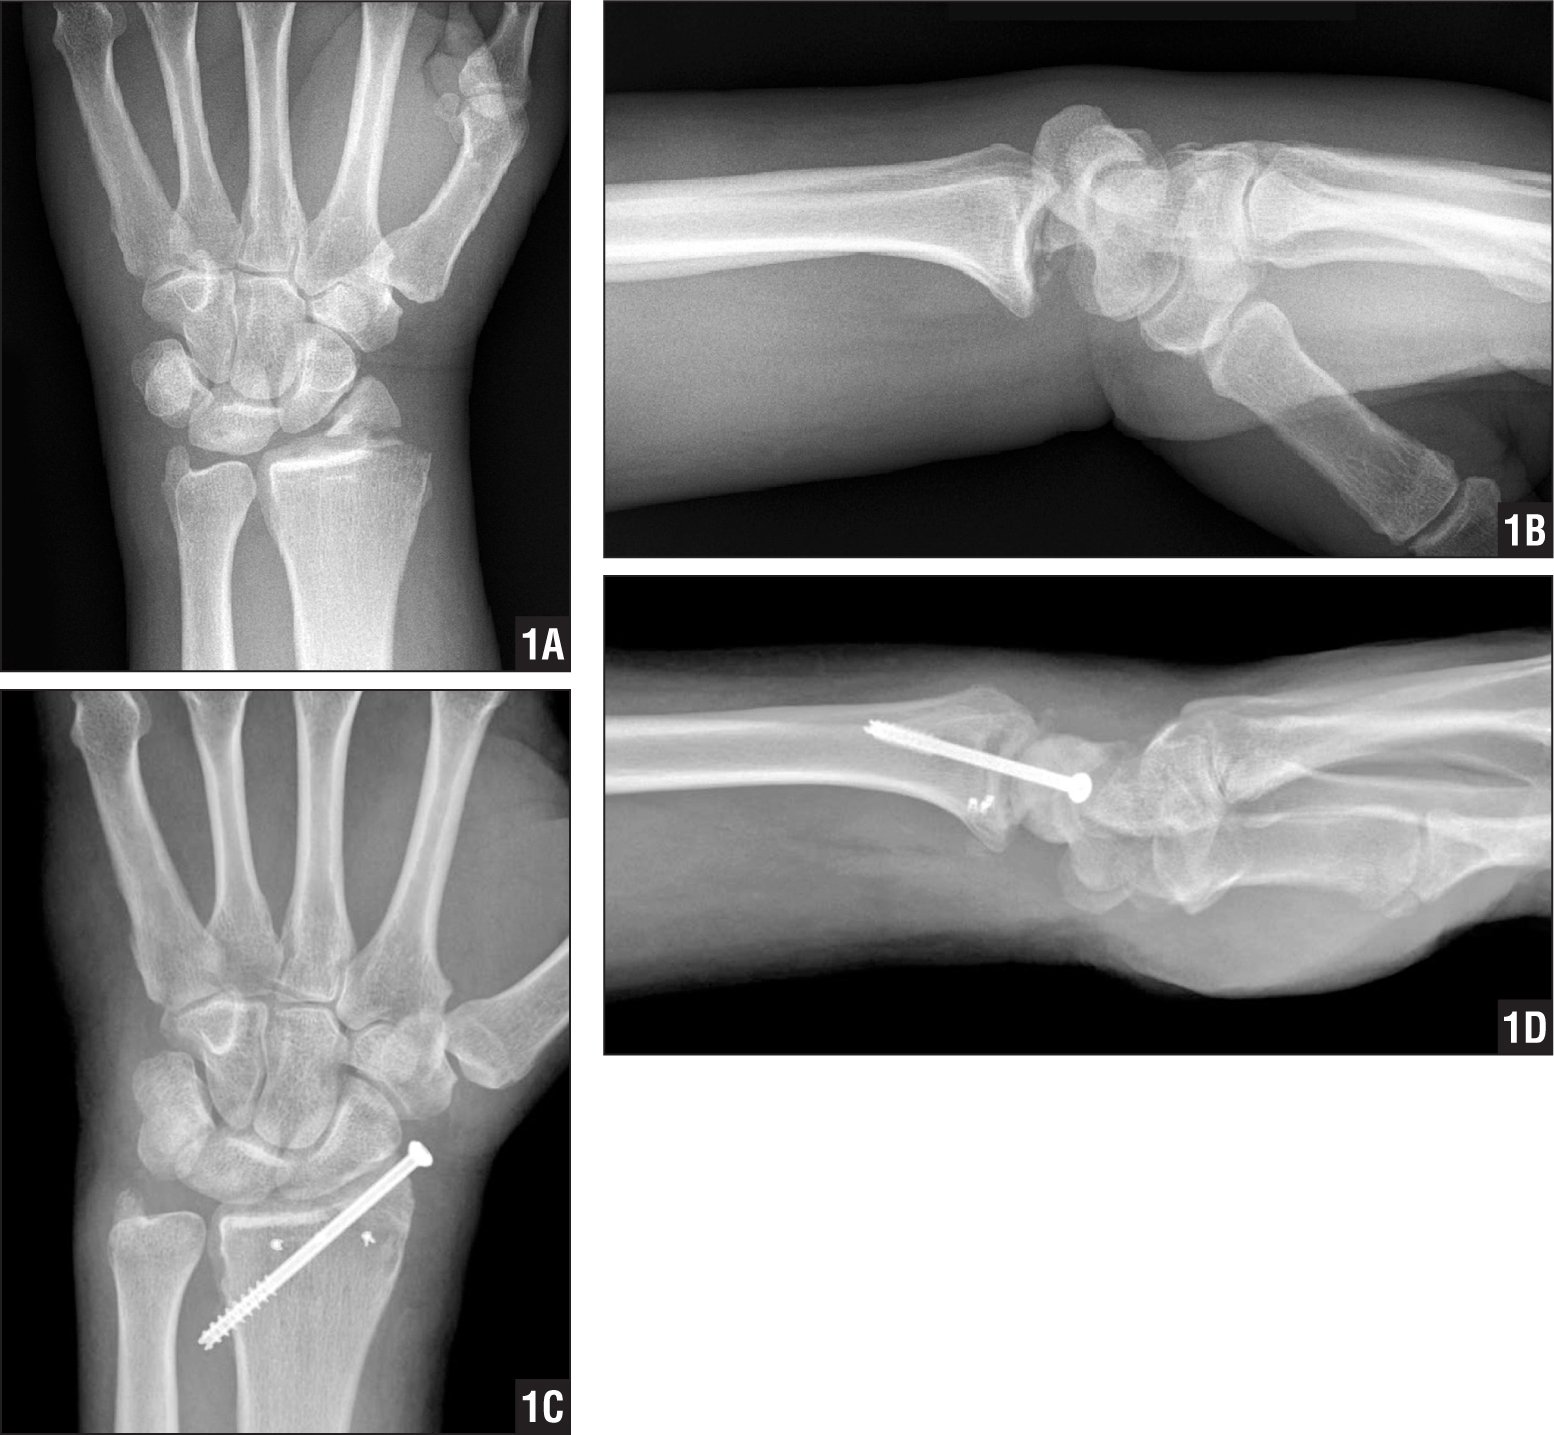 Preoperative posteroanterior (A) and lateral (B) radiographs taken before reduction showing a dorsal radiocarpal dislocation in a 47-year-old man with an associated radial styloid fracture. Significant laxity was evident intraoperatively, with both dorsal and volar subluxation of the carpus with manipulation evident on fluoroscopy. Postoperative posteroanterior (C) and lateral (D) radiographs showing restoration of radiocarpal alignment with screw fixation of the radial styloid fragment and repair of the volar capsuloligamentous complex with suture anchor fixation.